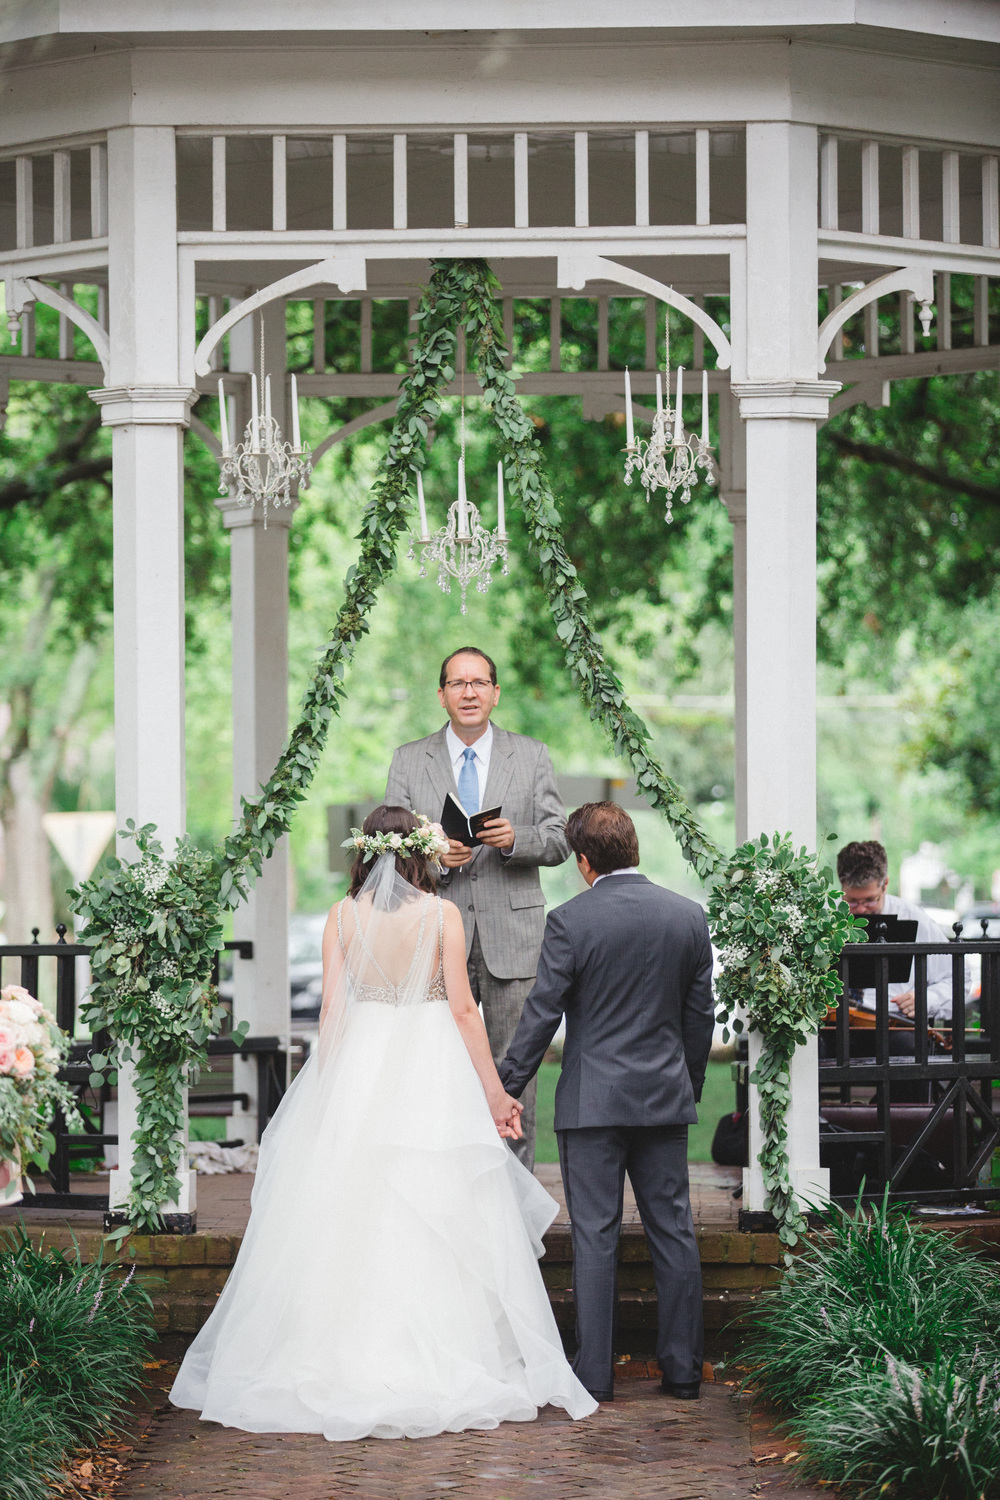 daniela-and-pedro-wedding-izzy-hudgins-photography-a-to-zinnias-whitfield-square-charles-h-morris-center-wedding-ivoyy-and-beau-bridal-boutique-dorie-hayley-paige-savannah-wedding-planner-savannah-bridal-boutique-savannah-weddings-26.jpg